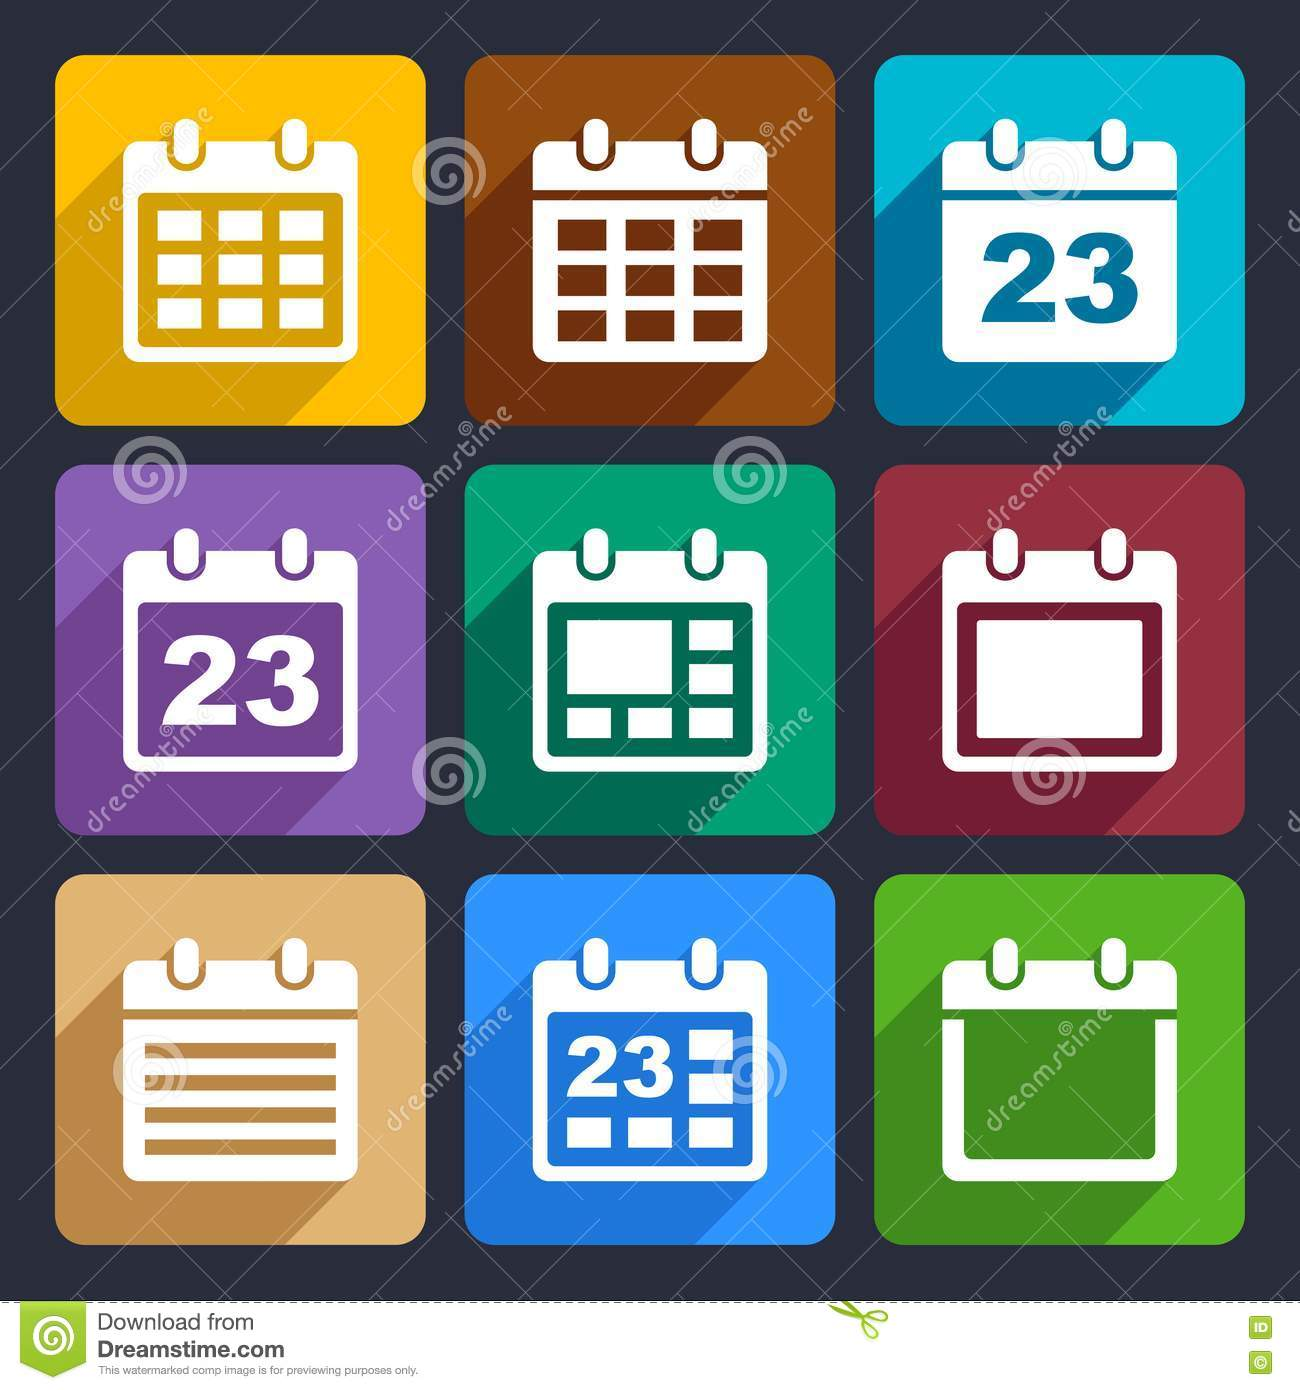 Calendar Web Icon : Calendar flat icons set stock photos image